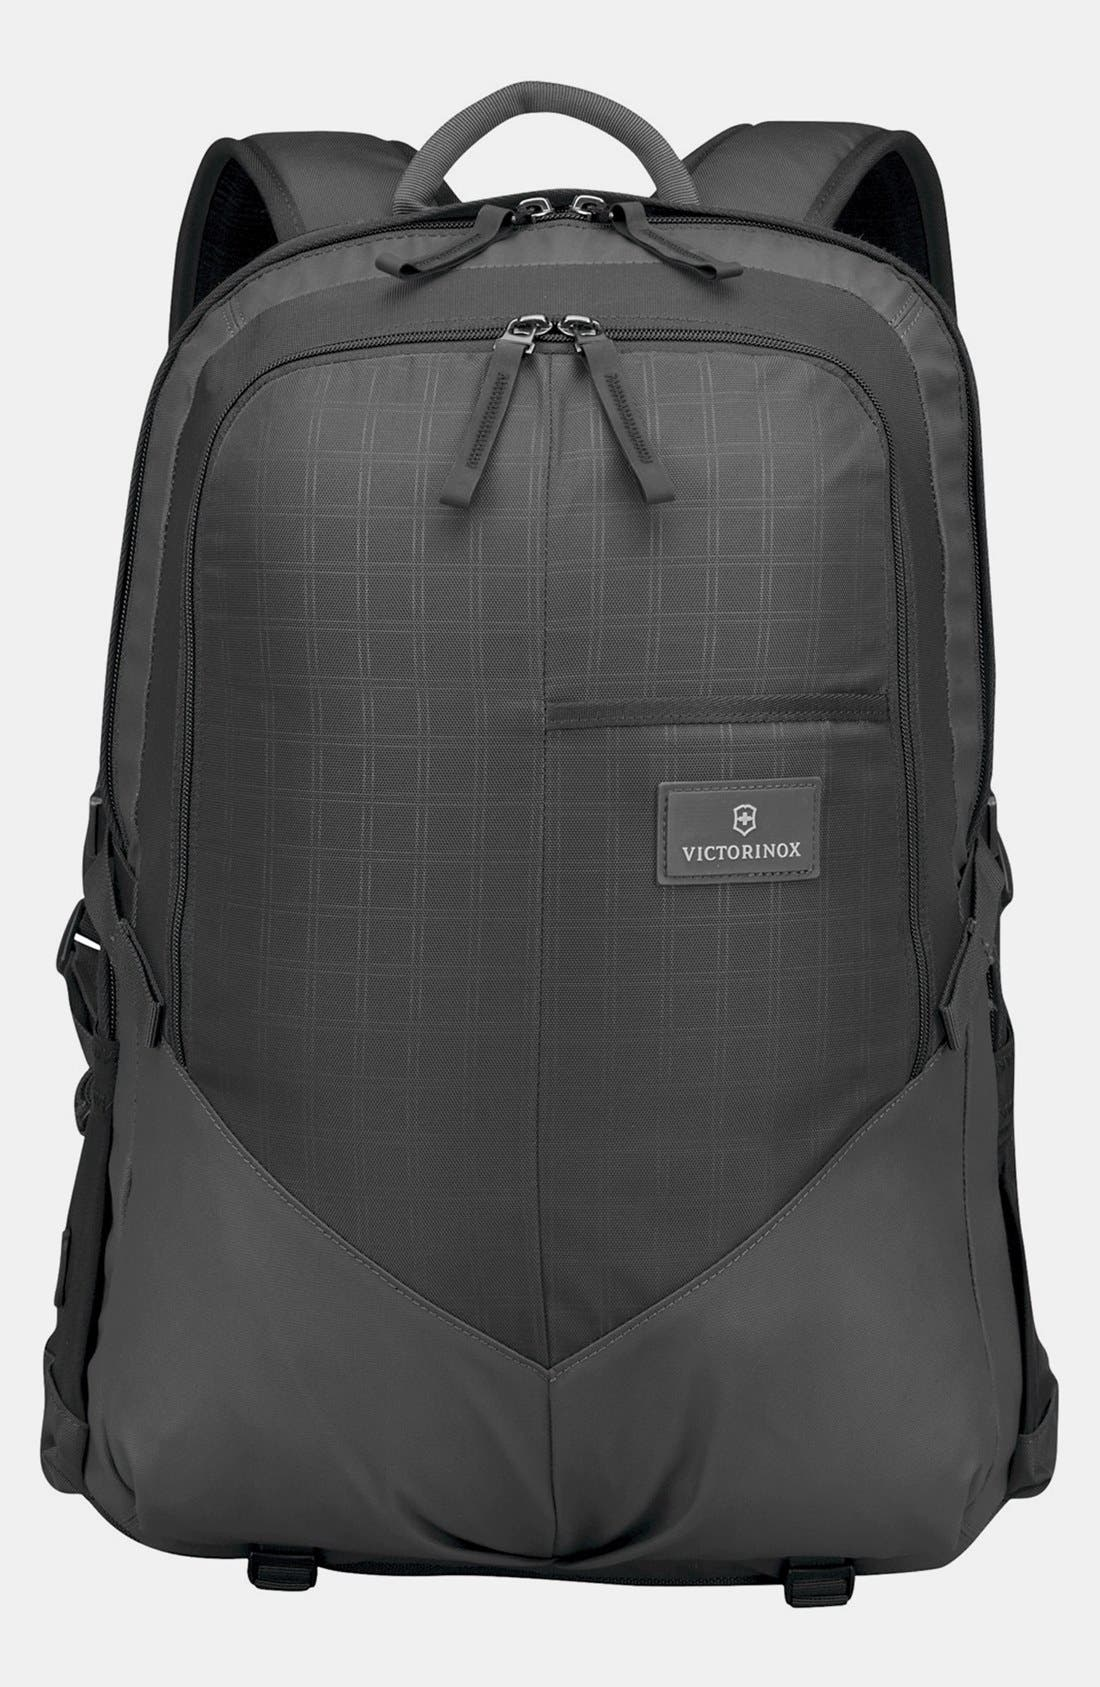 Victorinox Swiss Army® 'Altmont' Backpack